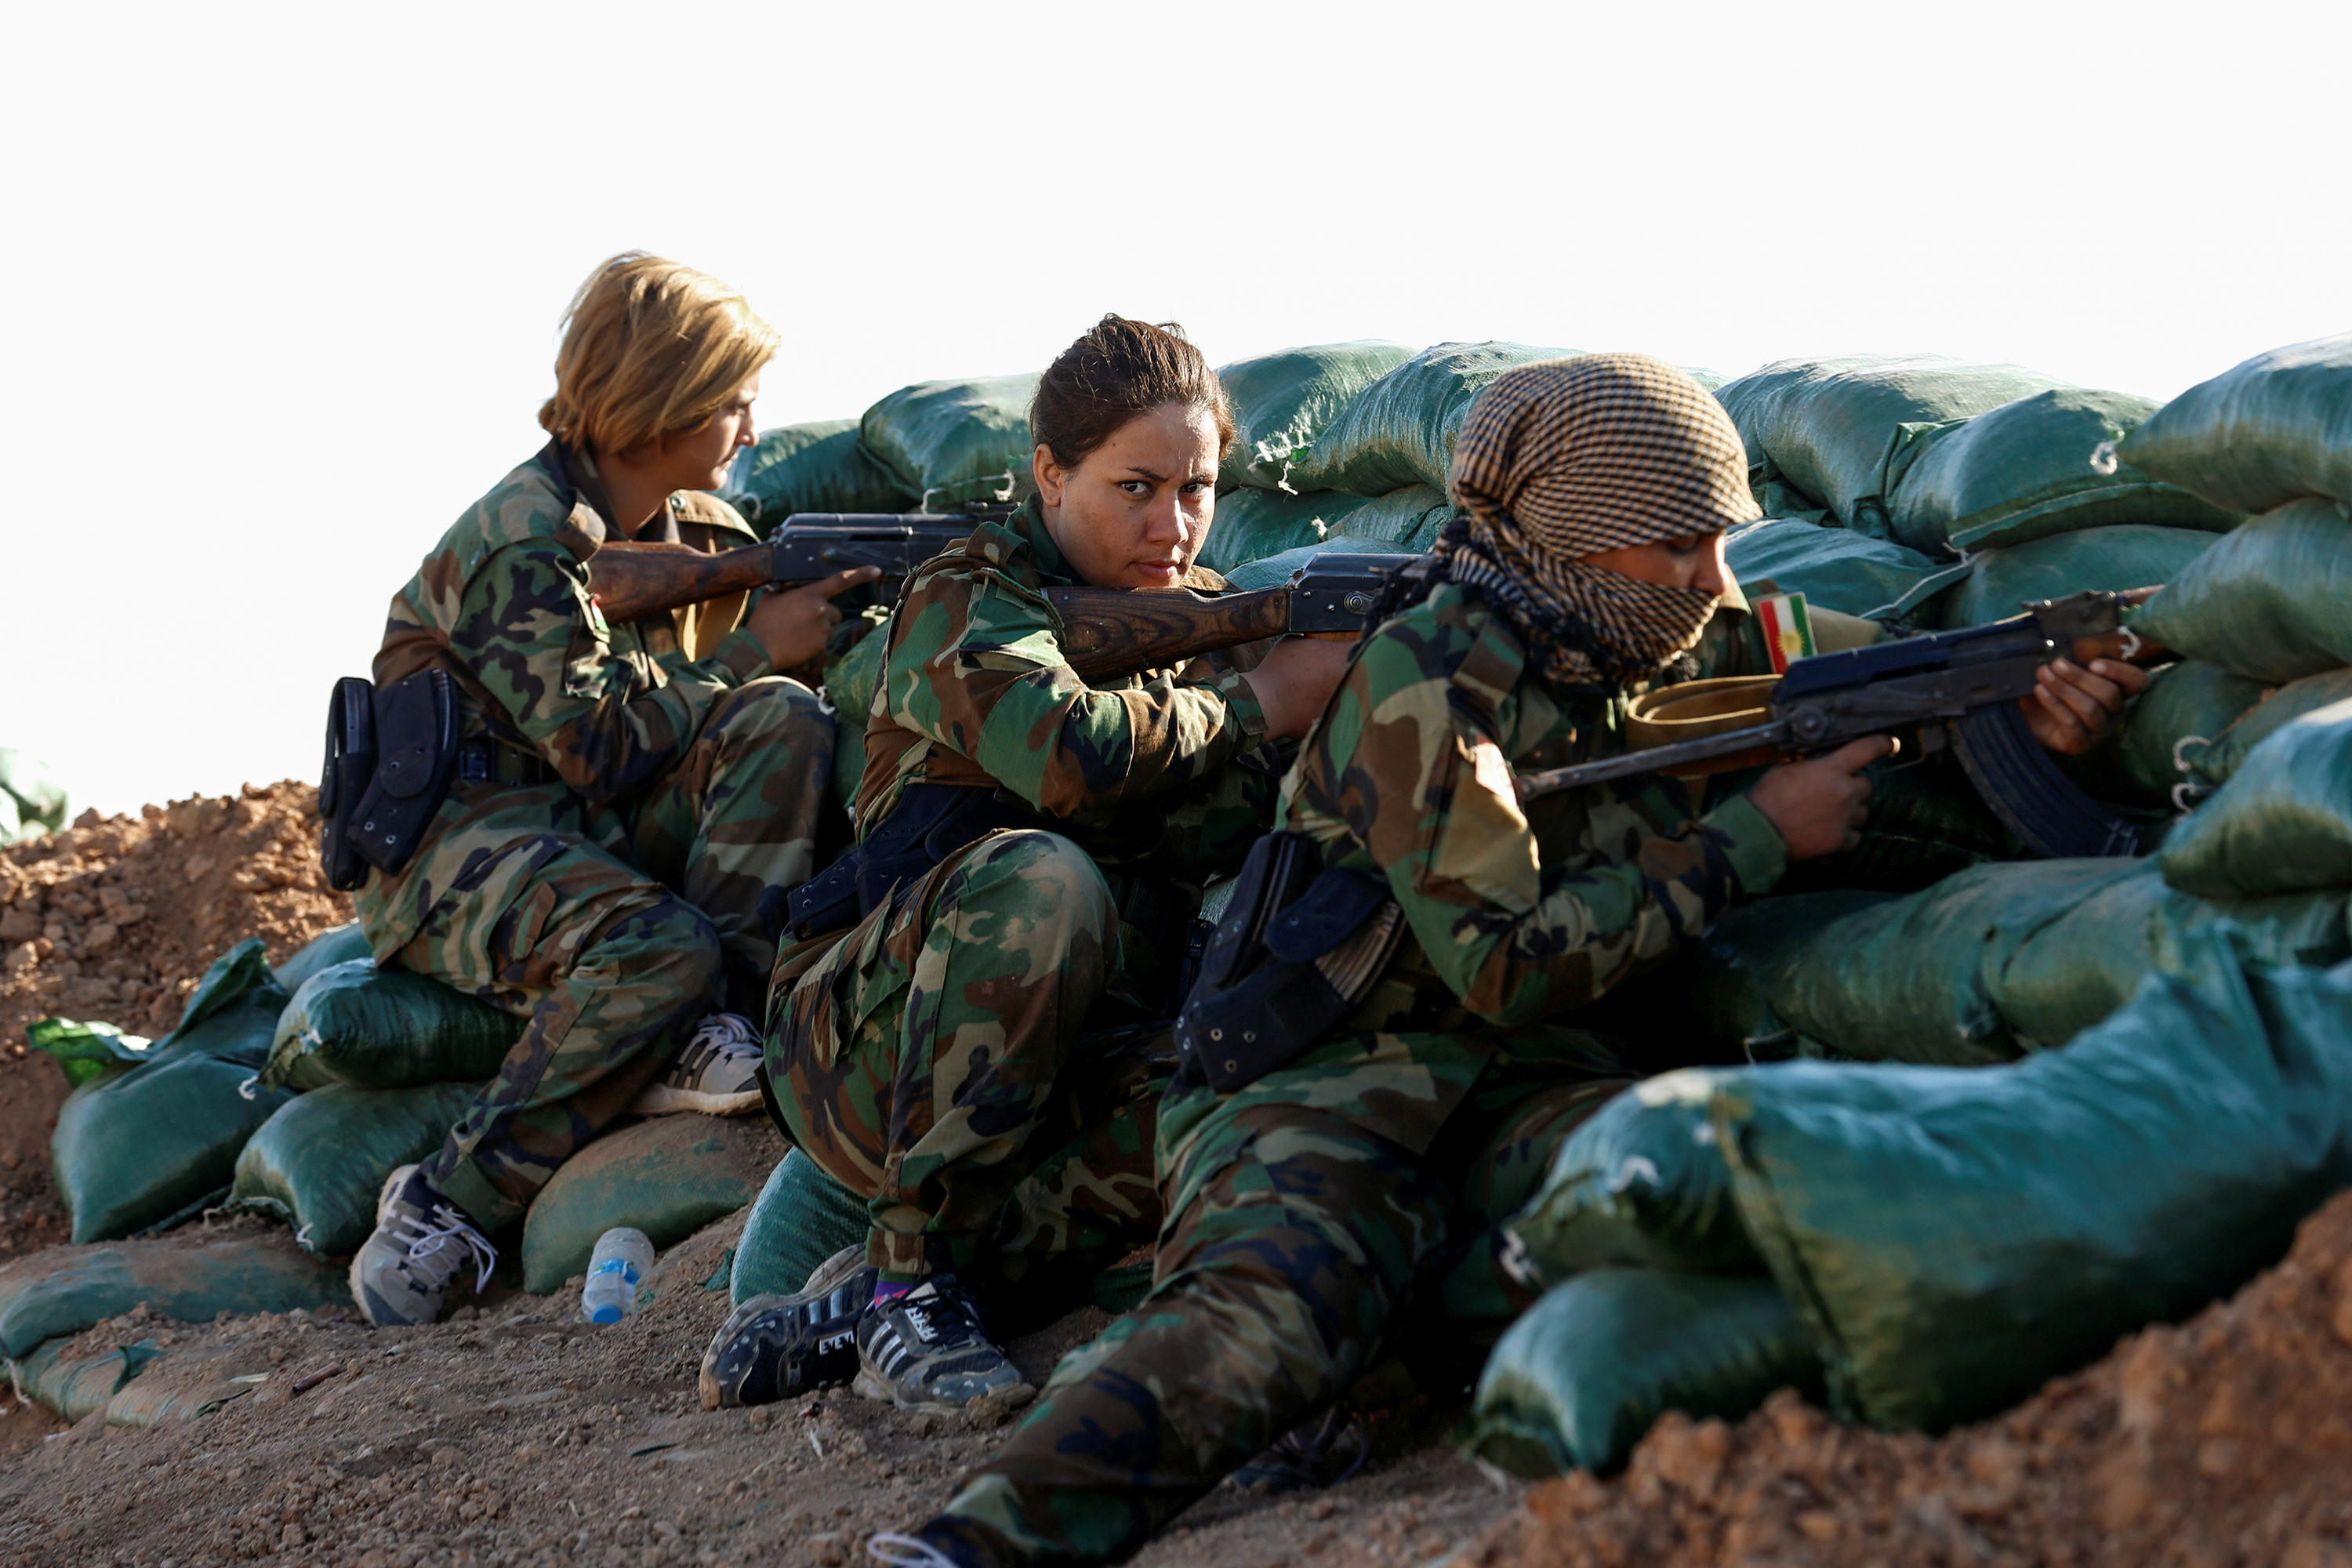 3 November 2016: Iranian-Kurdish female fighters take position during a battle with the Islamic State in Bashiqa, near Mosul, Iraq. (Photograph by Ahmed Jadallah/Reuters)